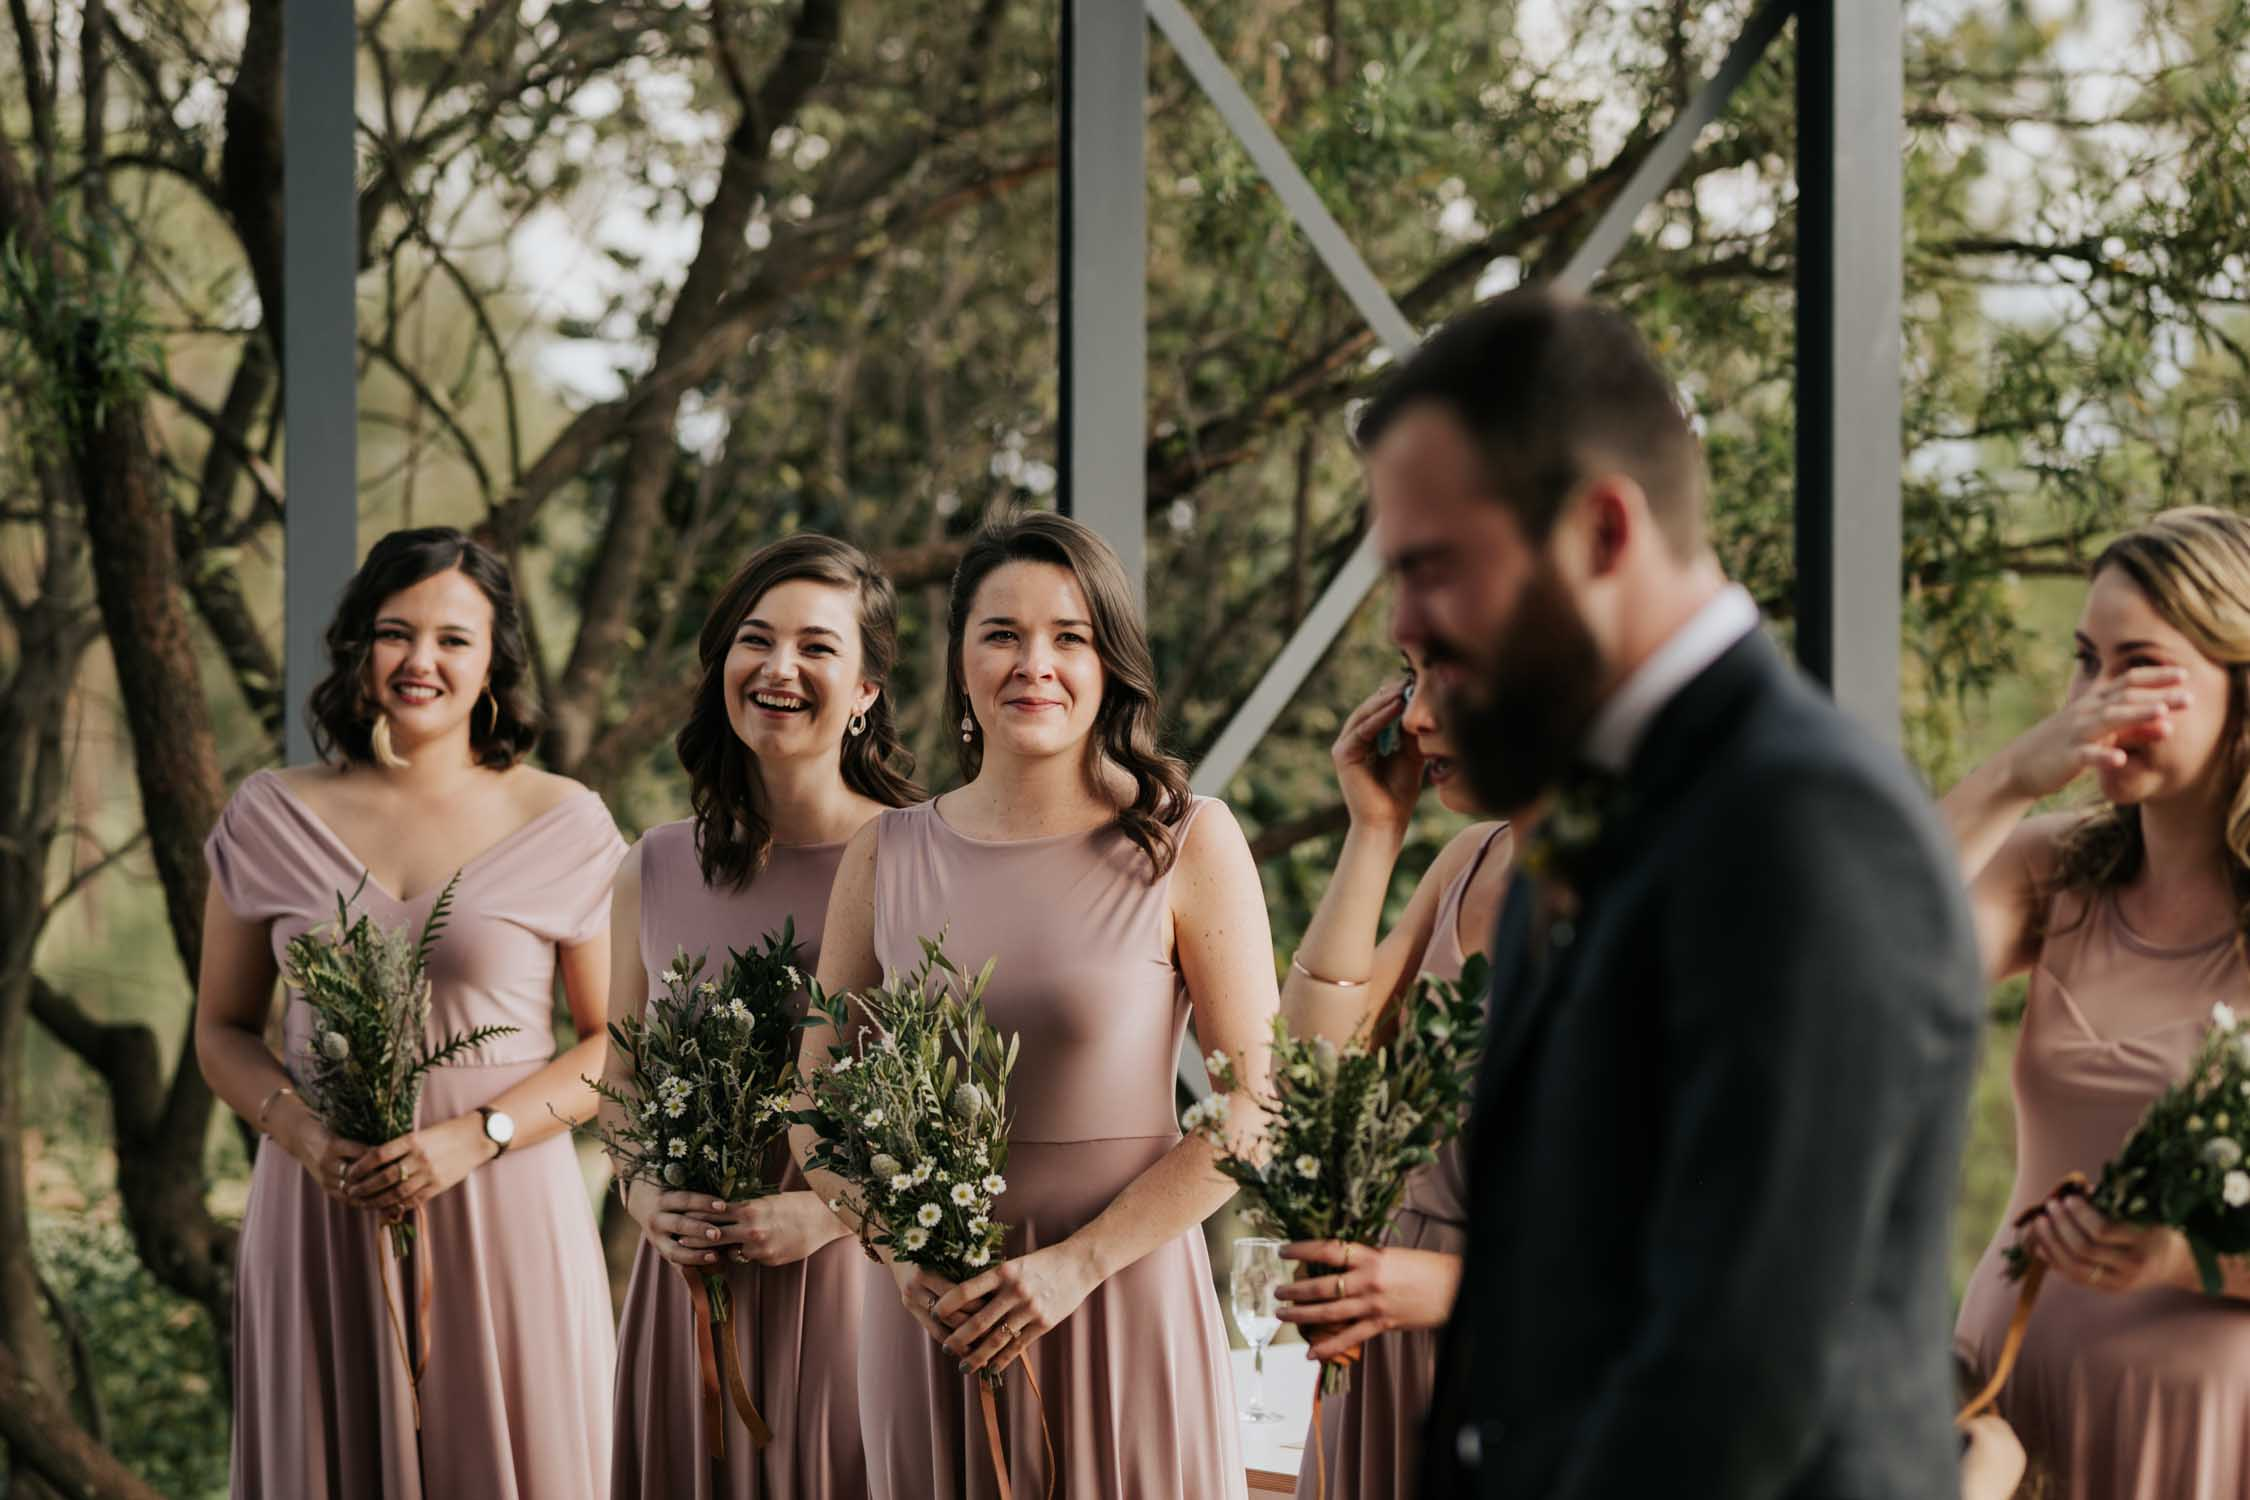 Bridesmaids wearing dusty pink dresses watch groom's emotional cry as he watches bride walk down aisle